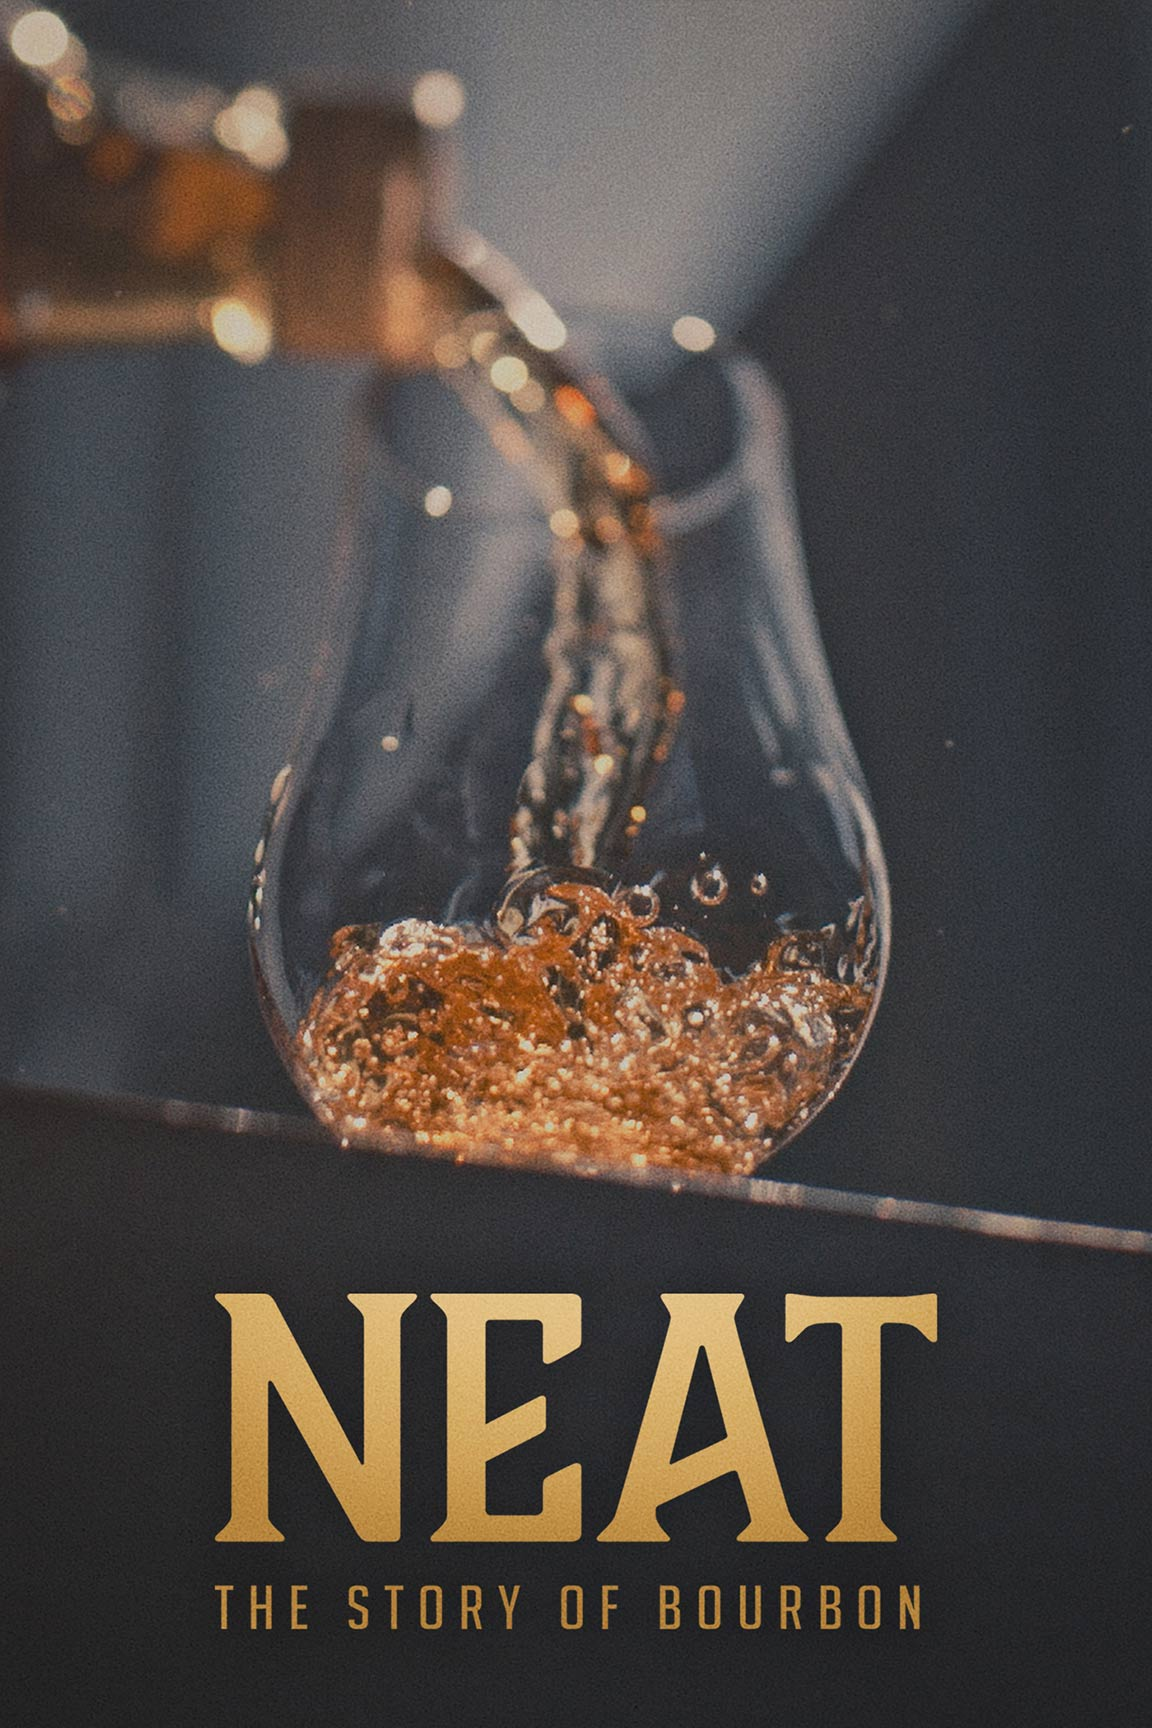 Neat: The Story of Bourbon Poster #1